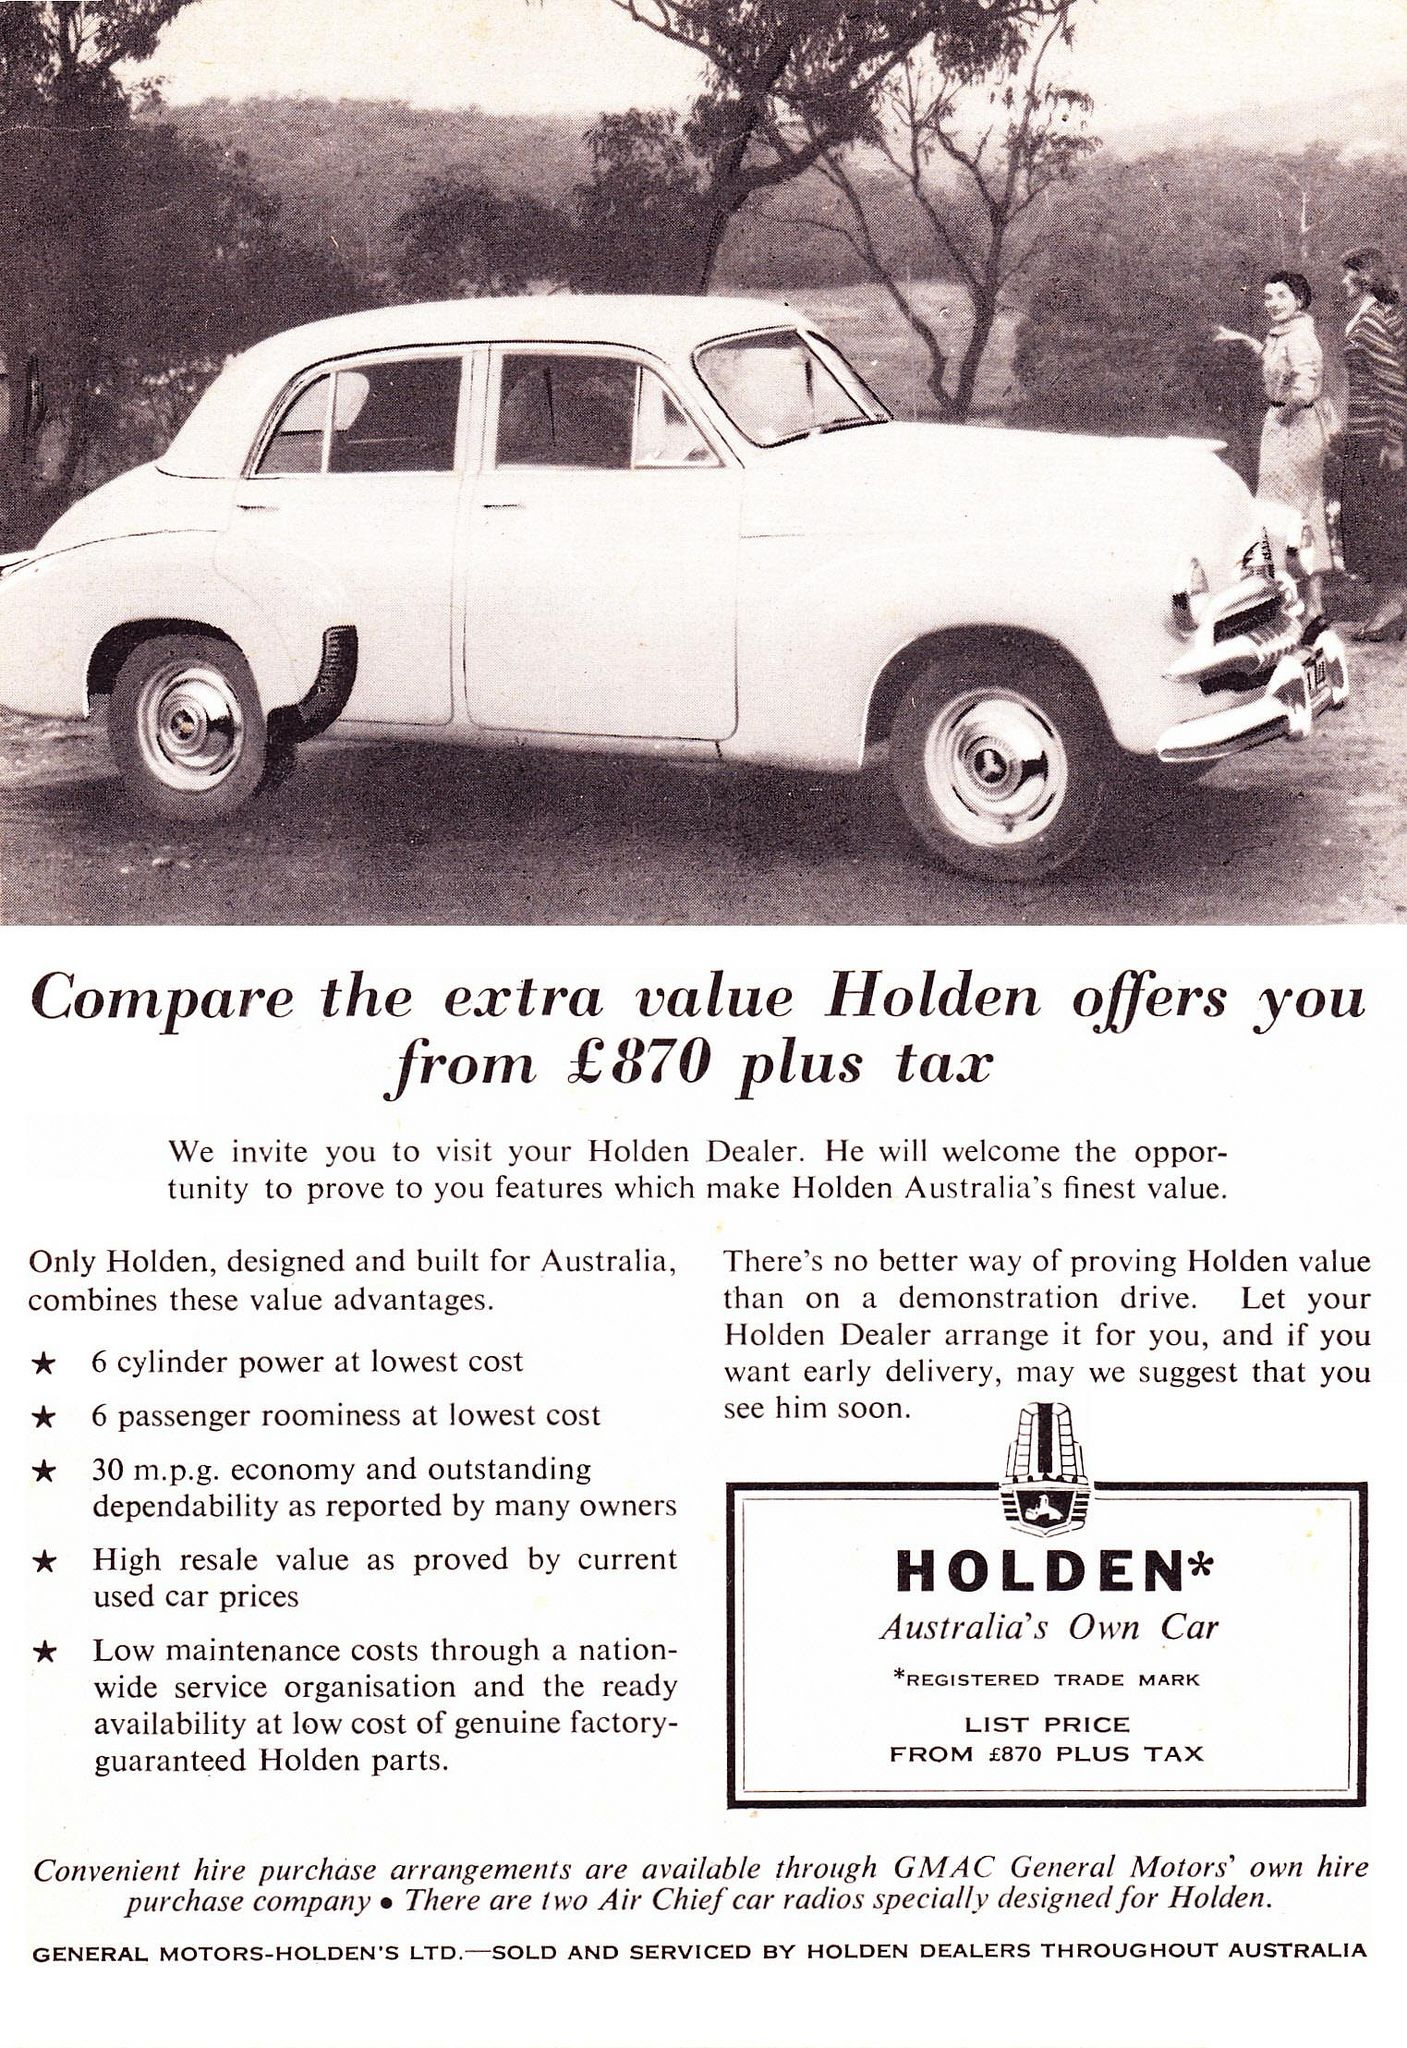 1955 Fj Holden Sedan Aussie Original Magazine Adver Vintage Autos Australian Cars Australia